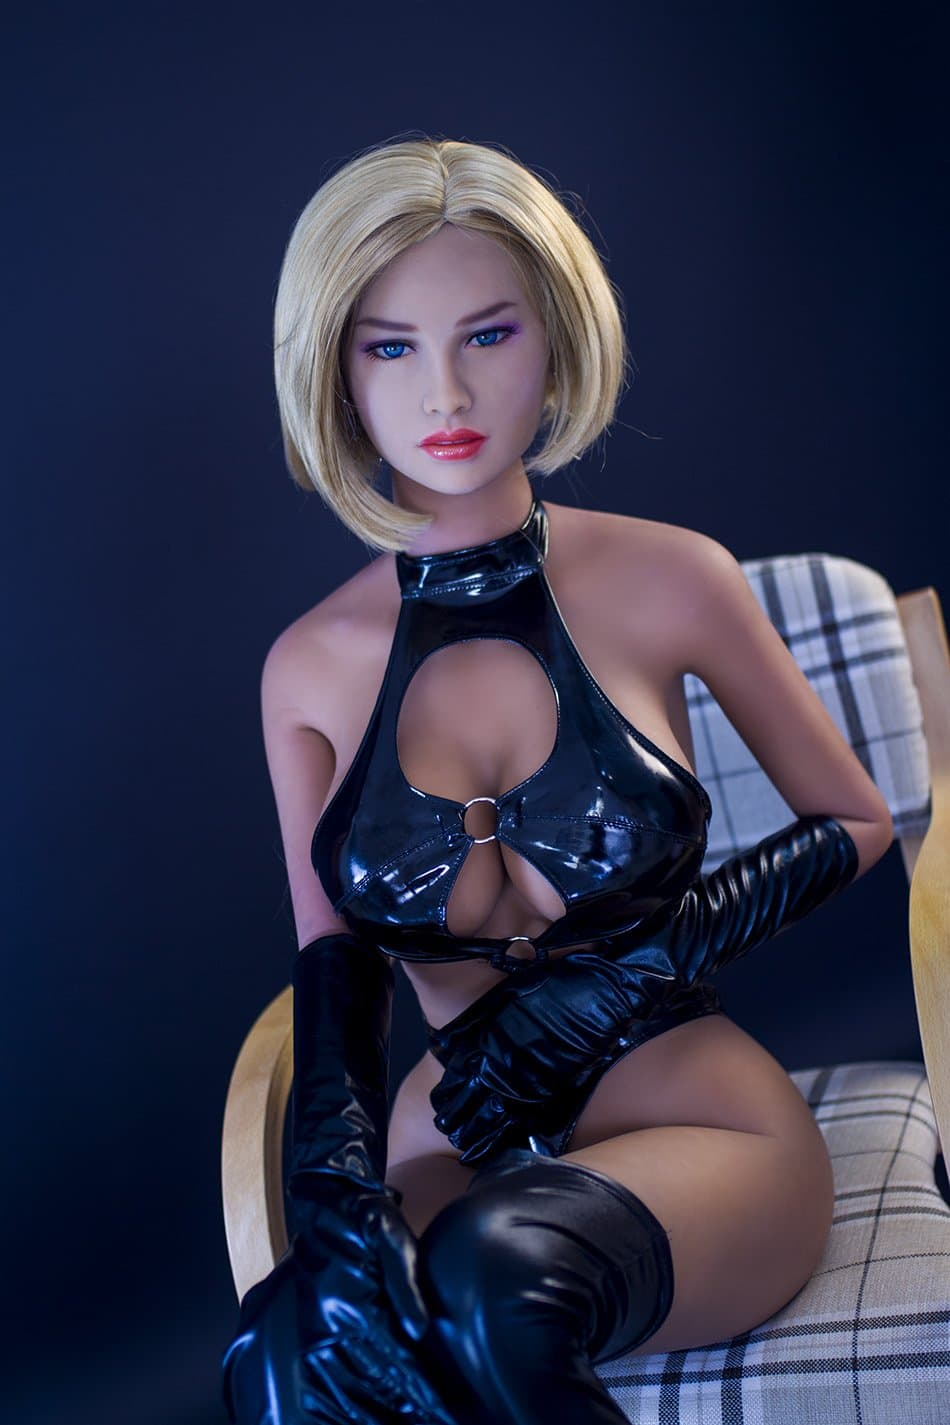 mads 165cm blonde jy big boobs athletic tpe sex doll(9)